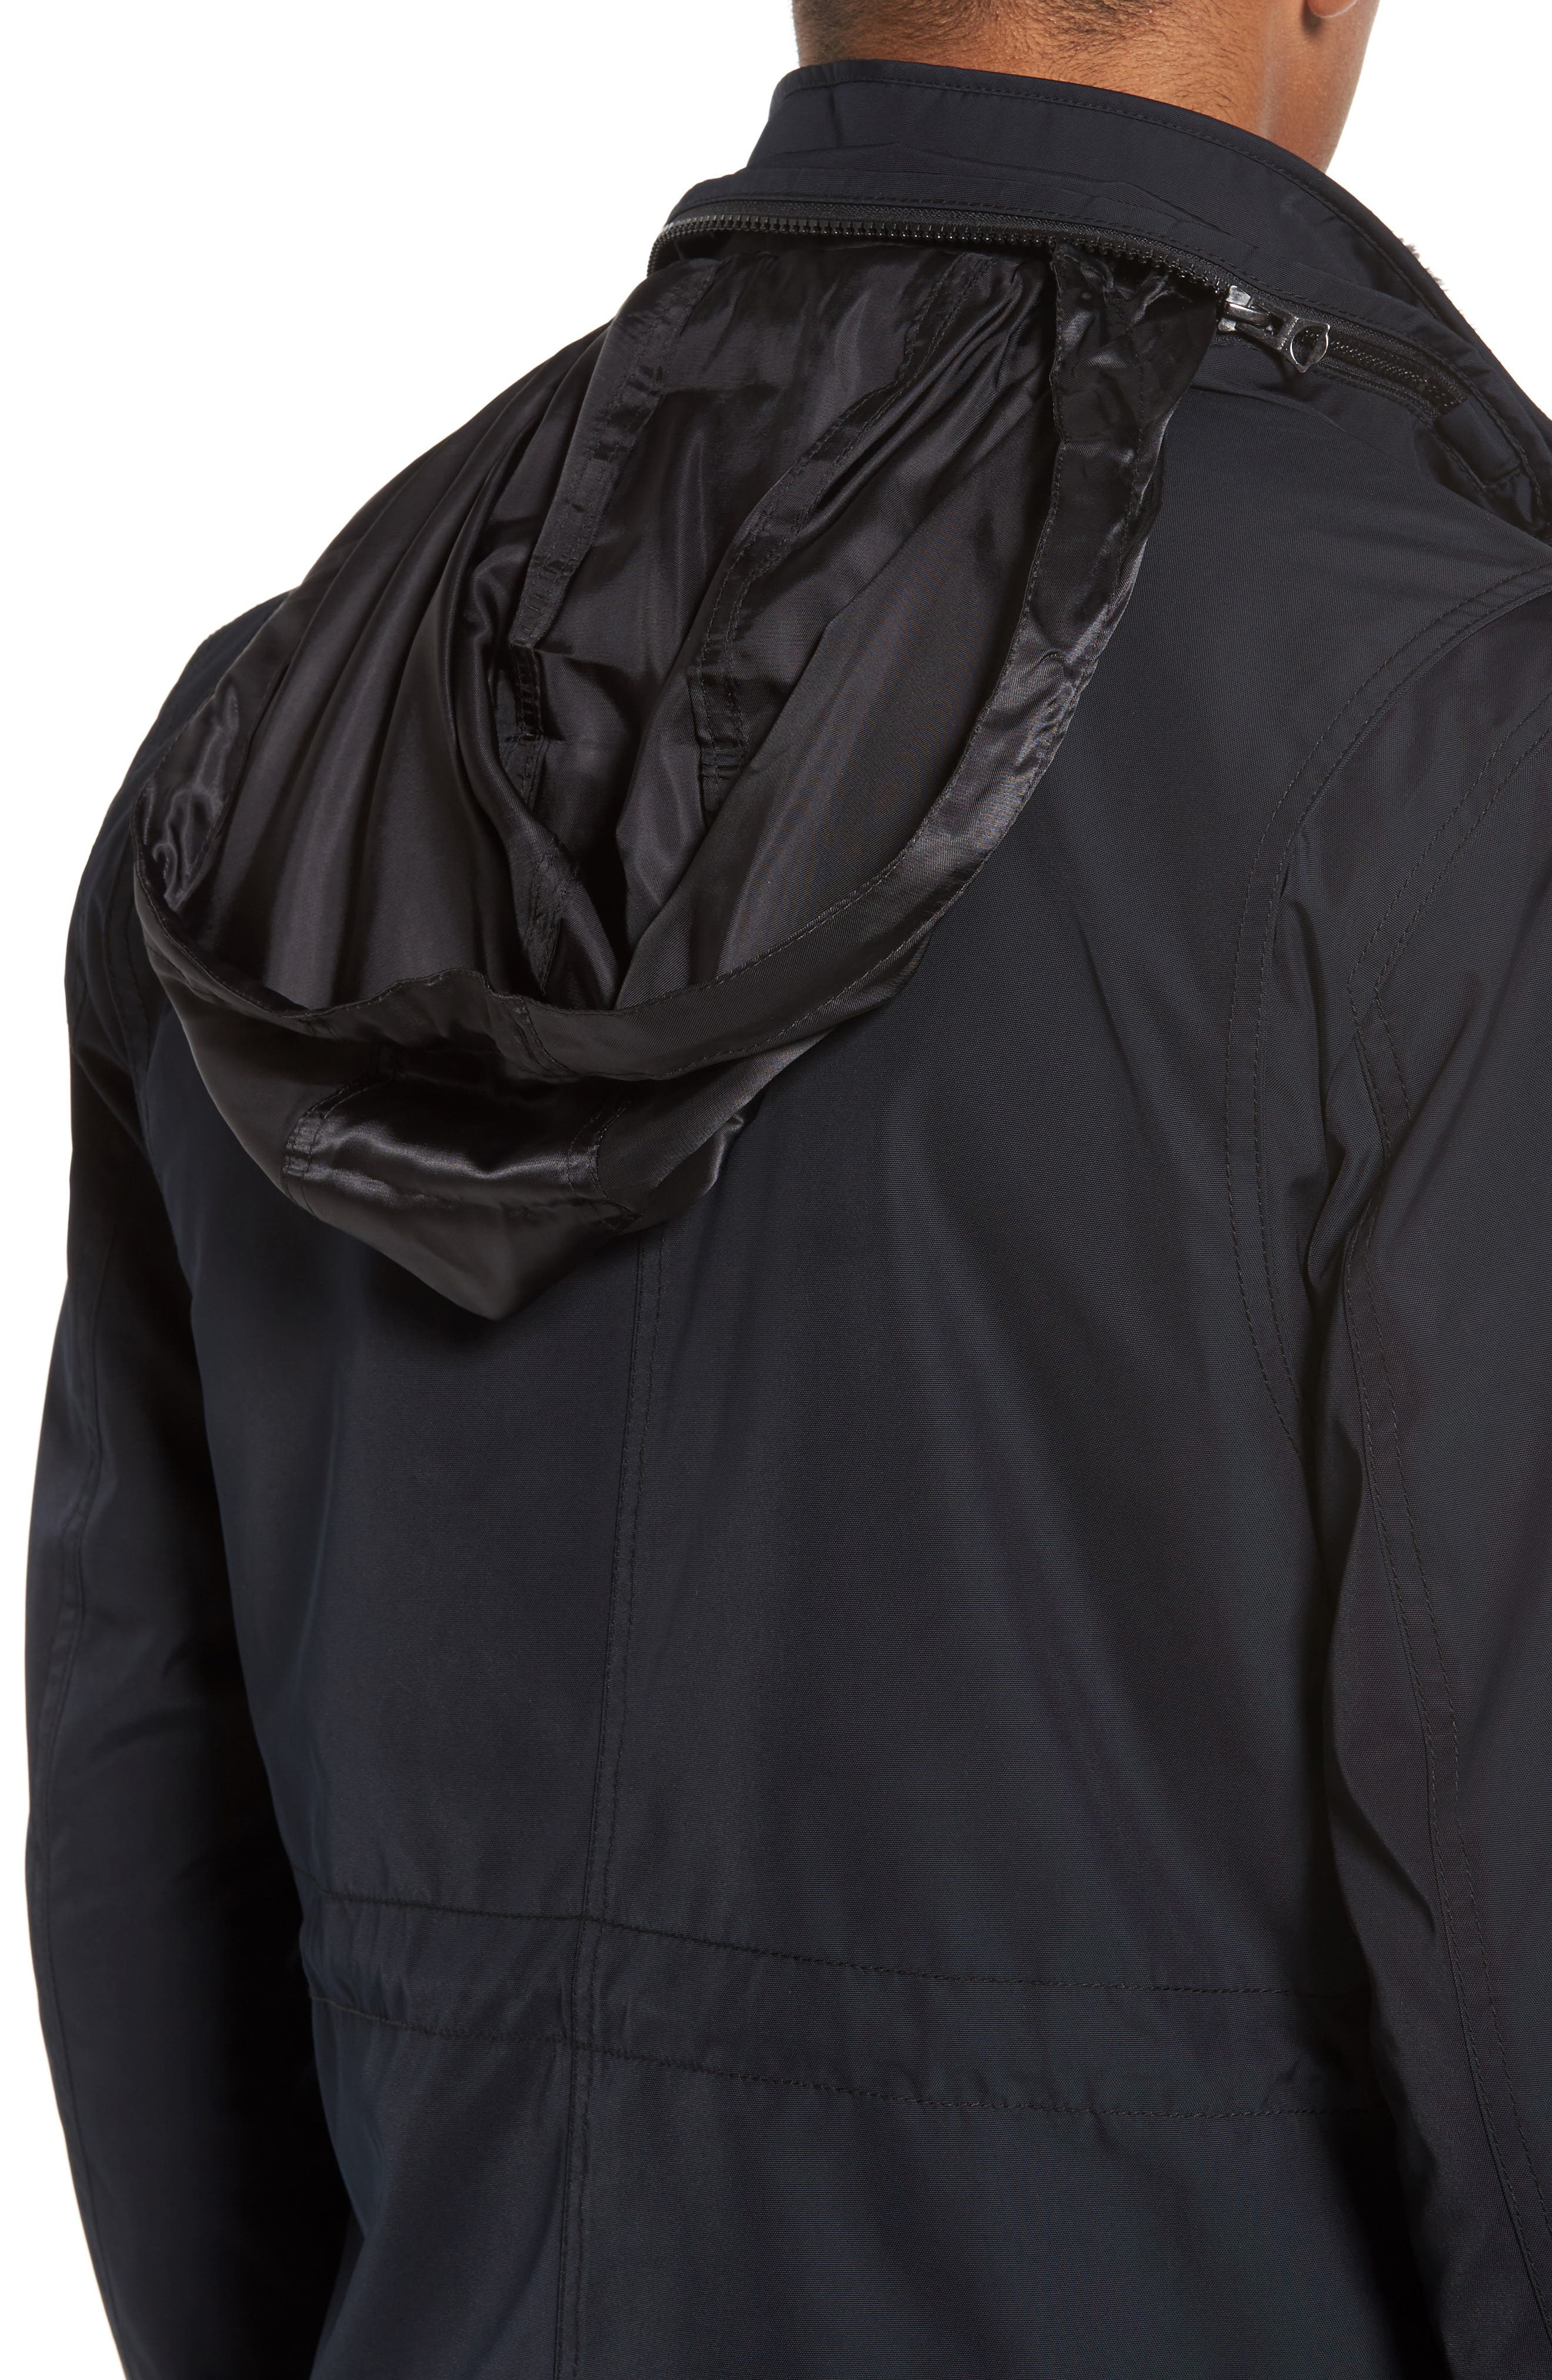 Onick Water Repellent 3-in-1 Field Jacket,                             Alternate thumbnail 4, color,                             001